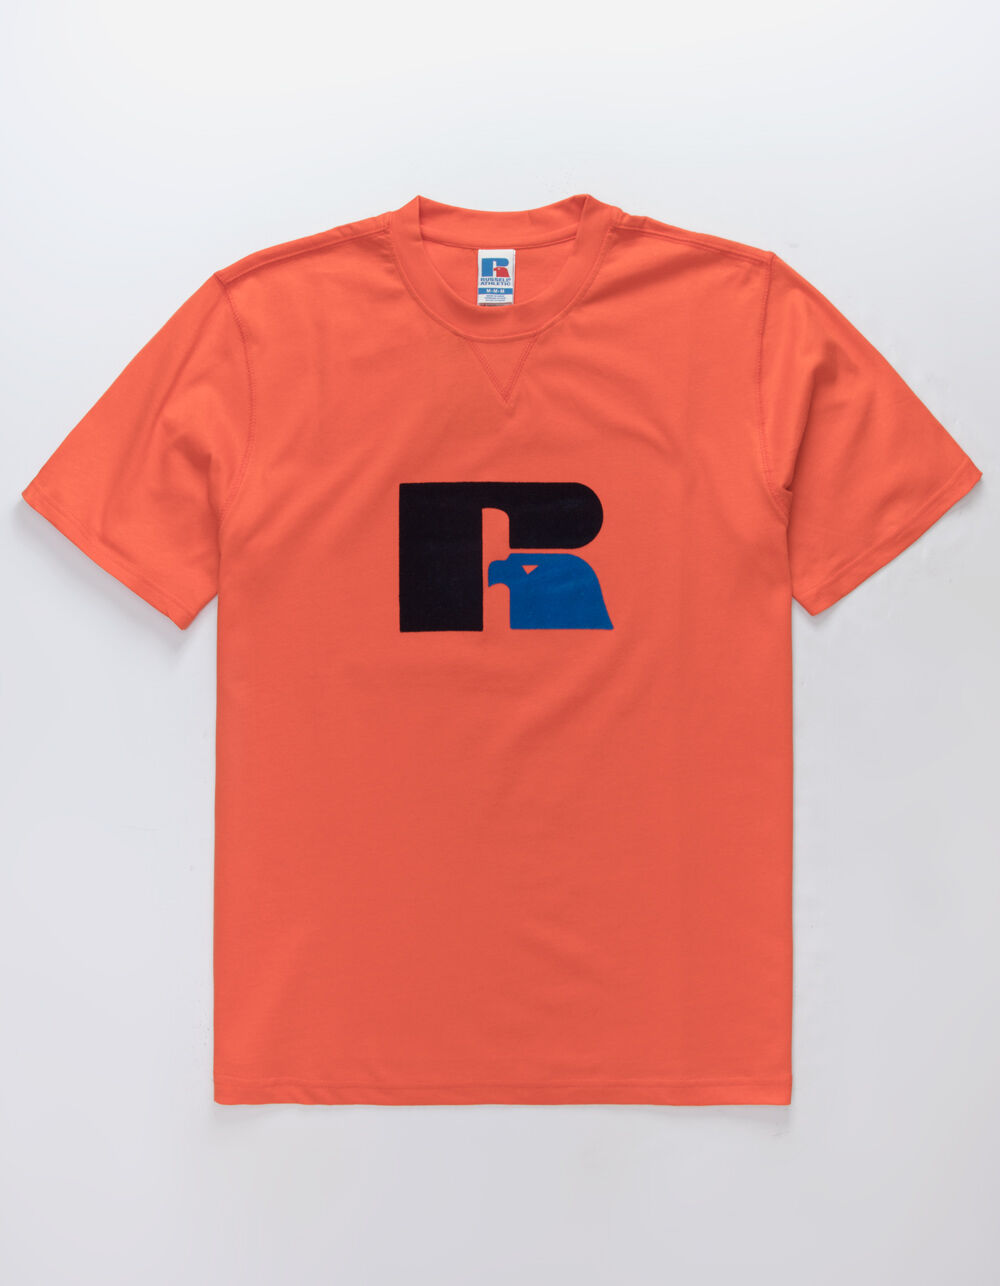 RUSSELL ATHLETIC Jerry Flock Orange T-Shirt